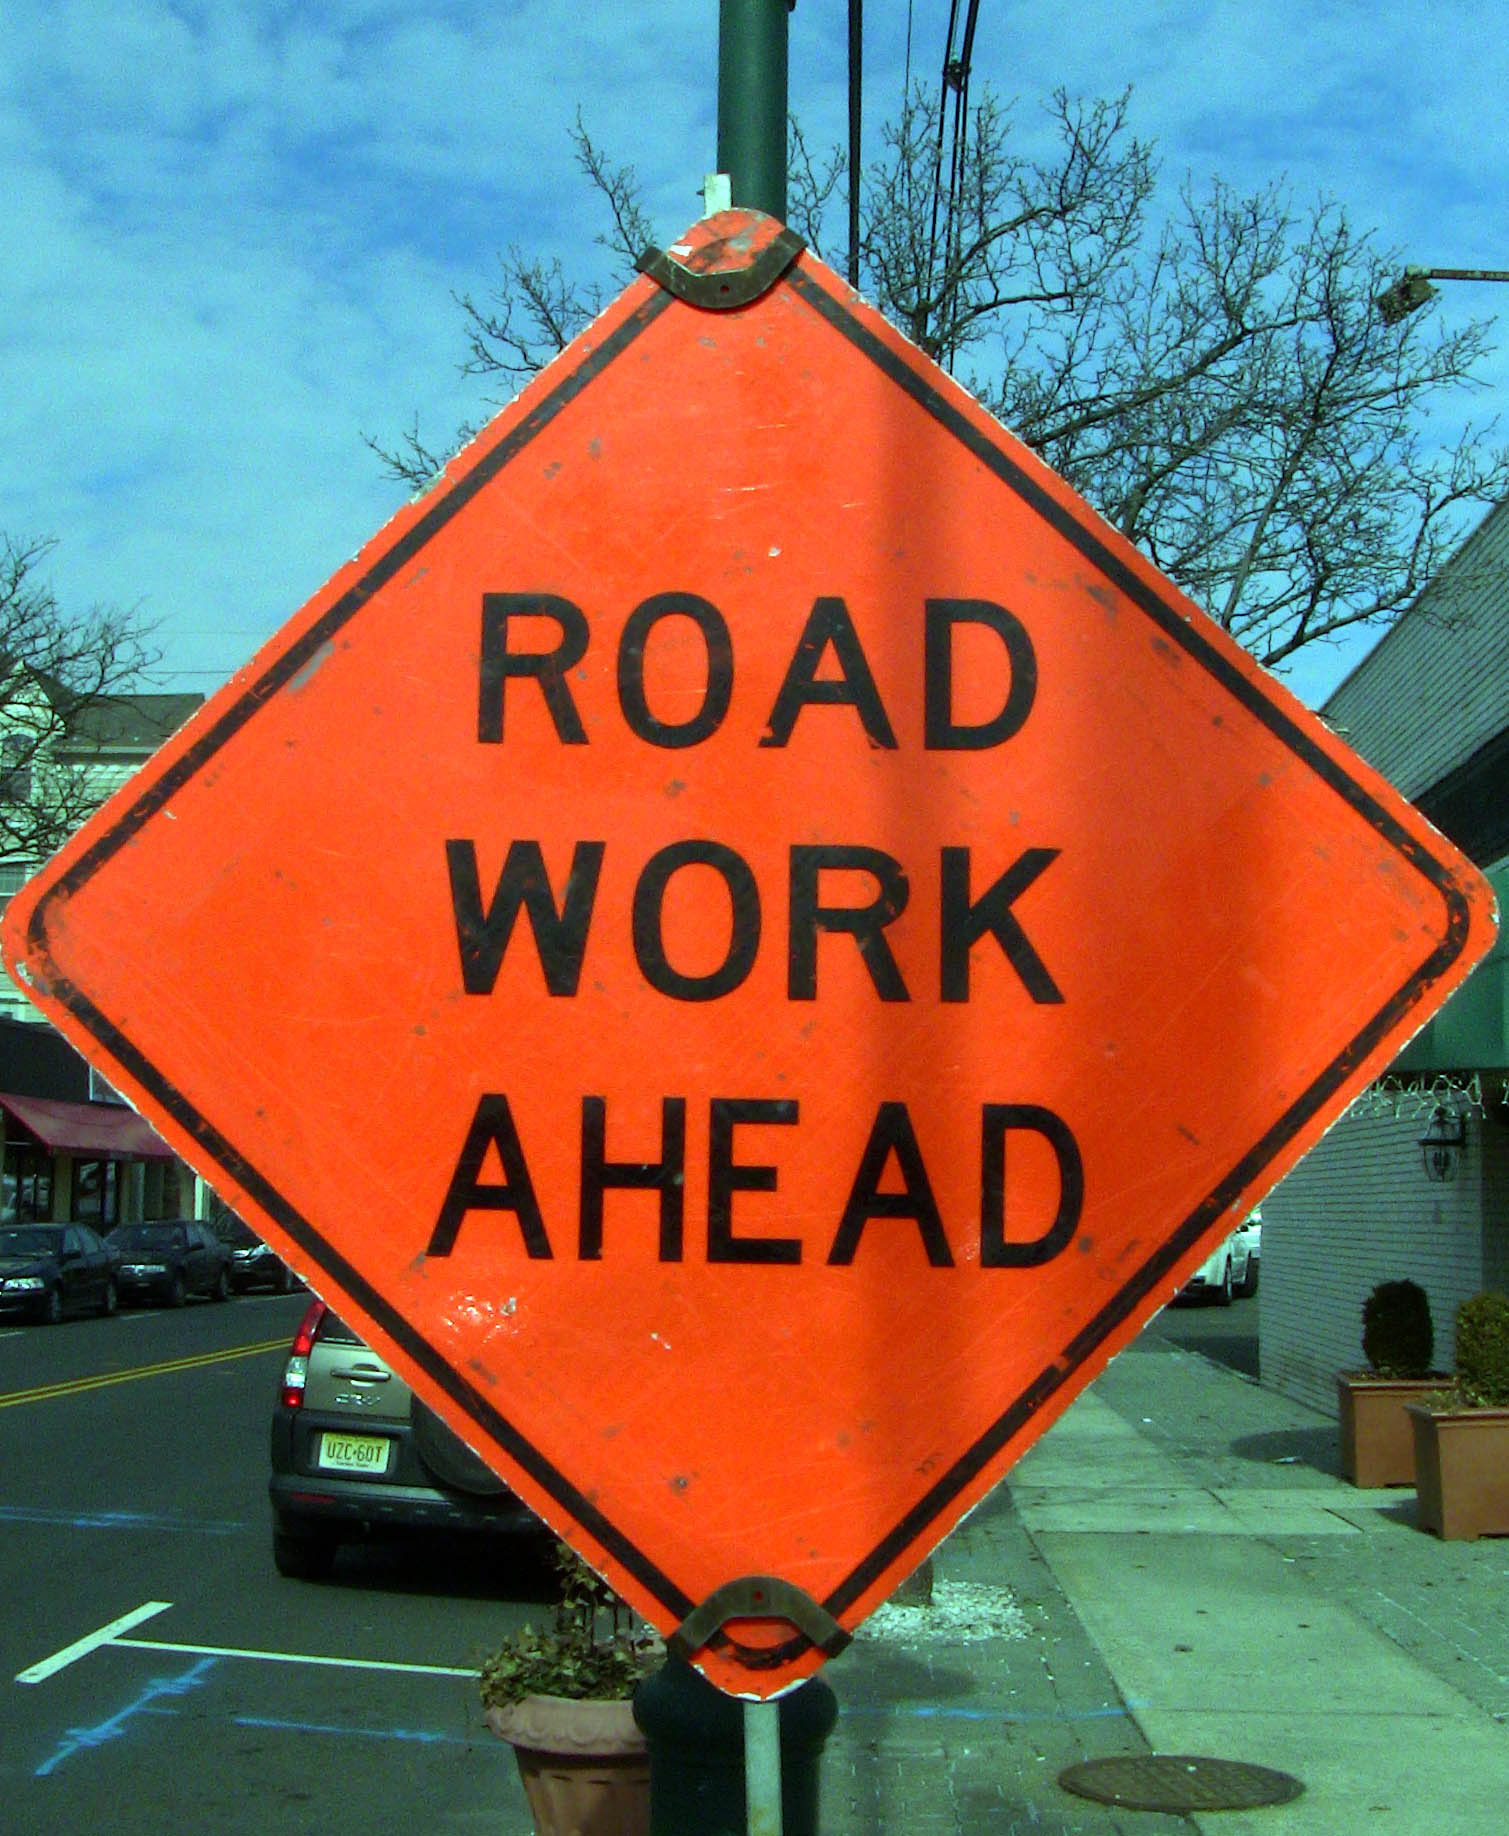 1ae3137ebe8821018061_Road_Work_Ahead_sign.jpg